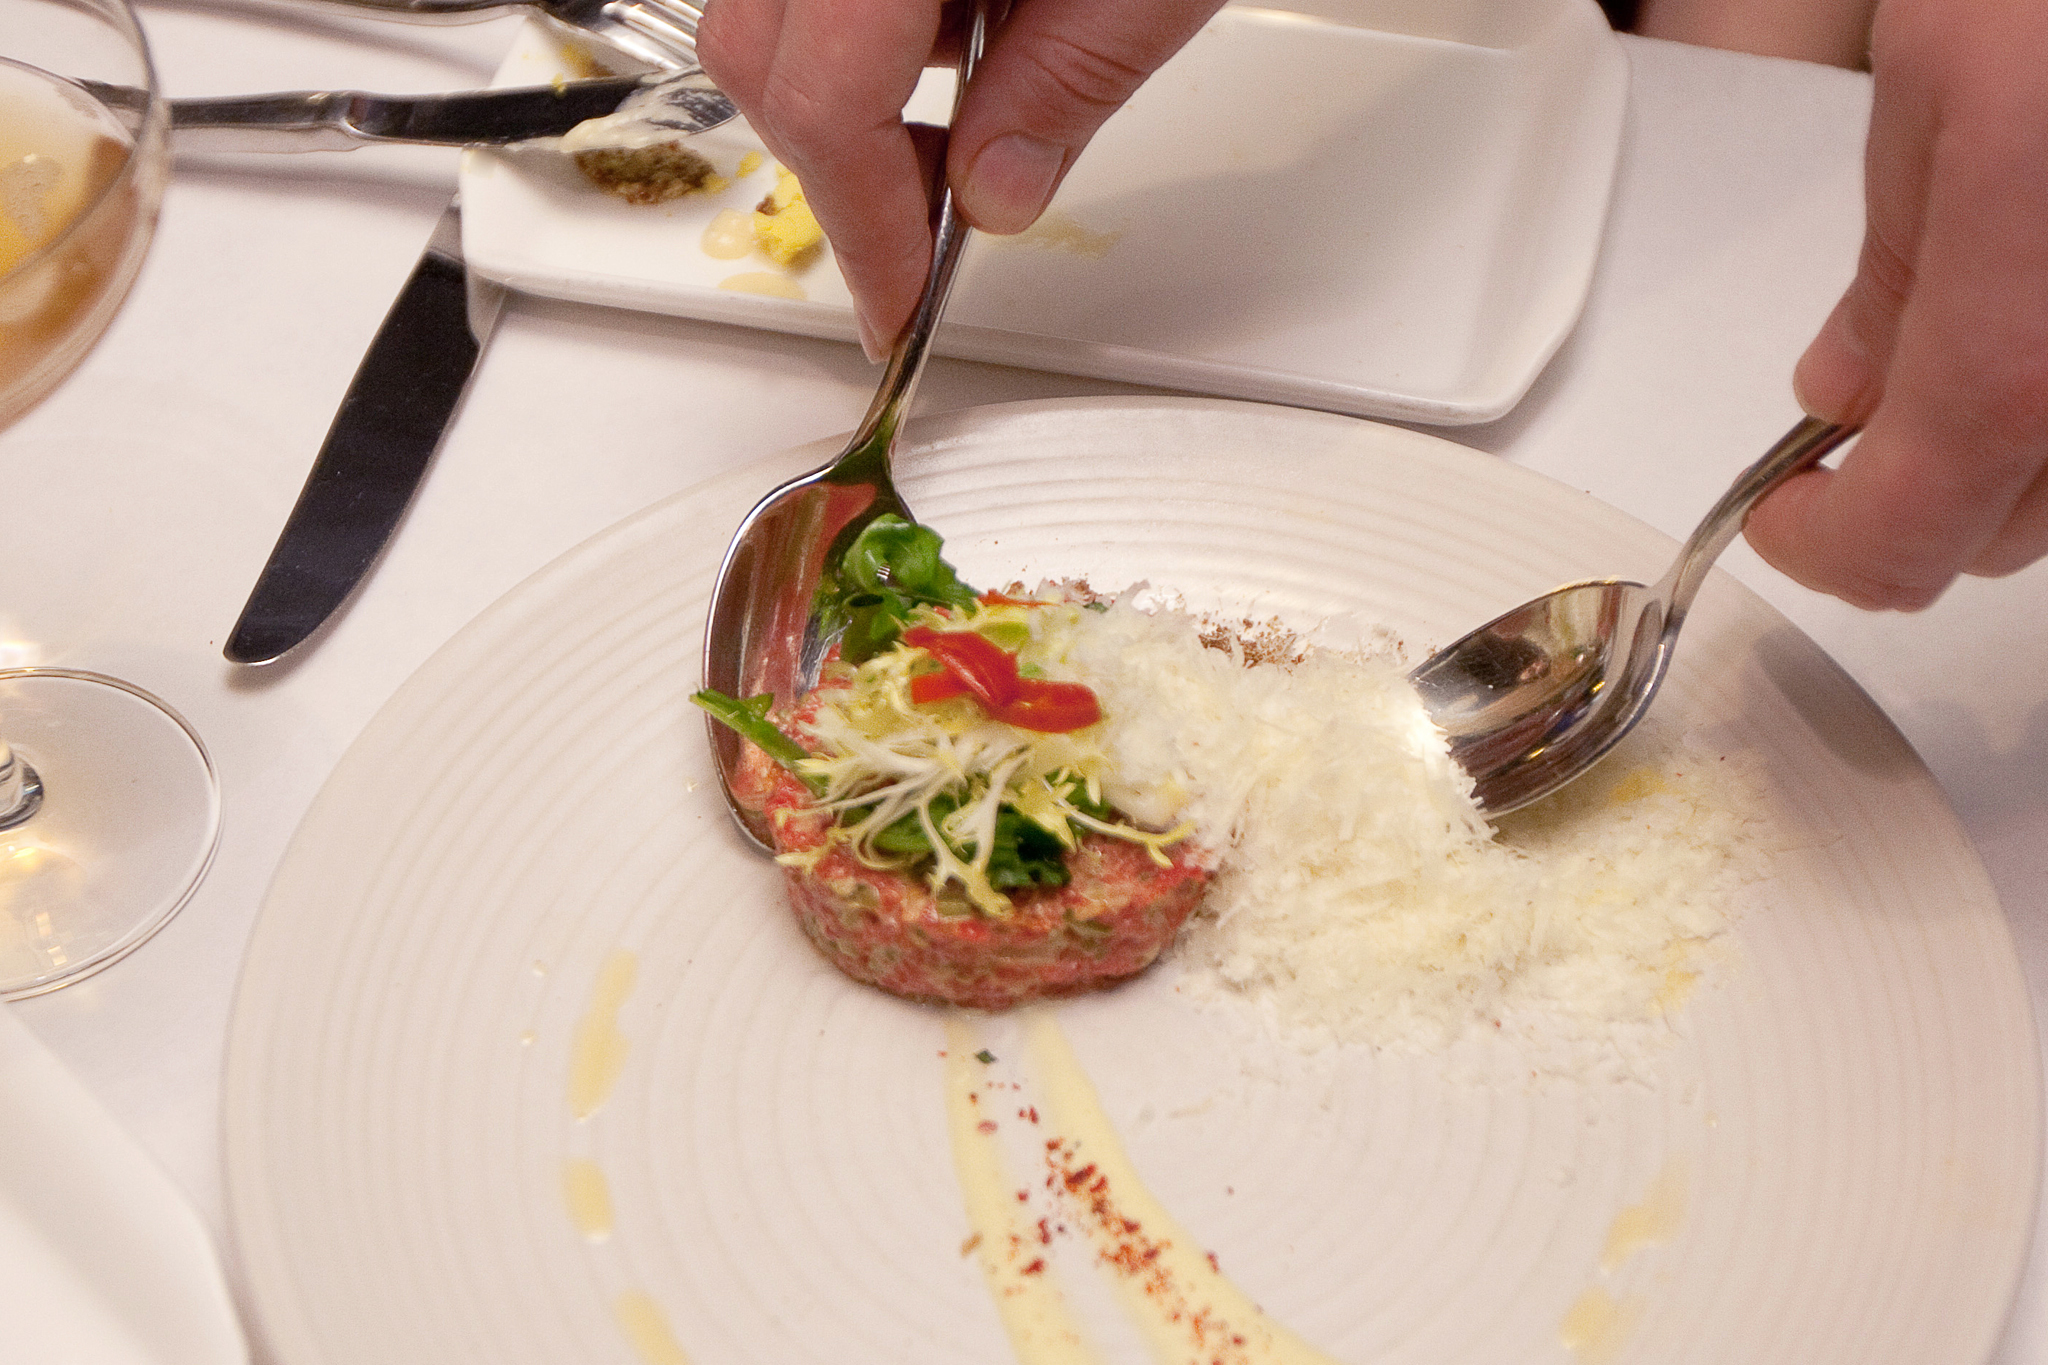 Bison tartare at The Gage.